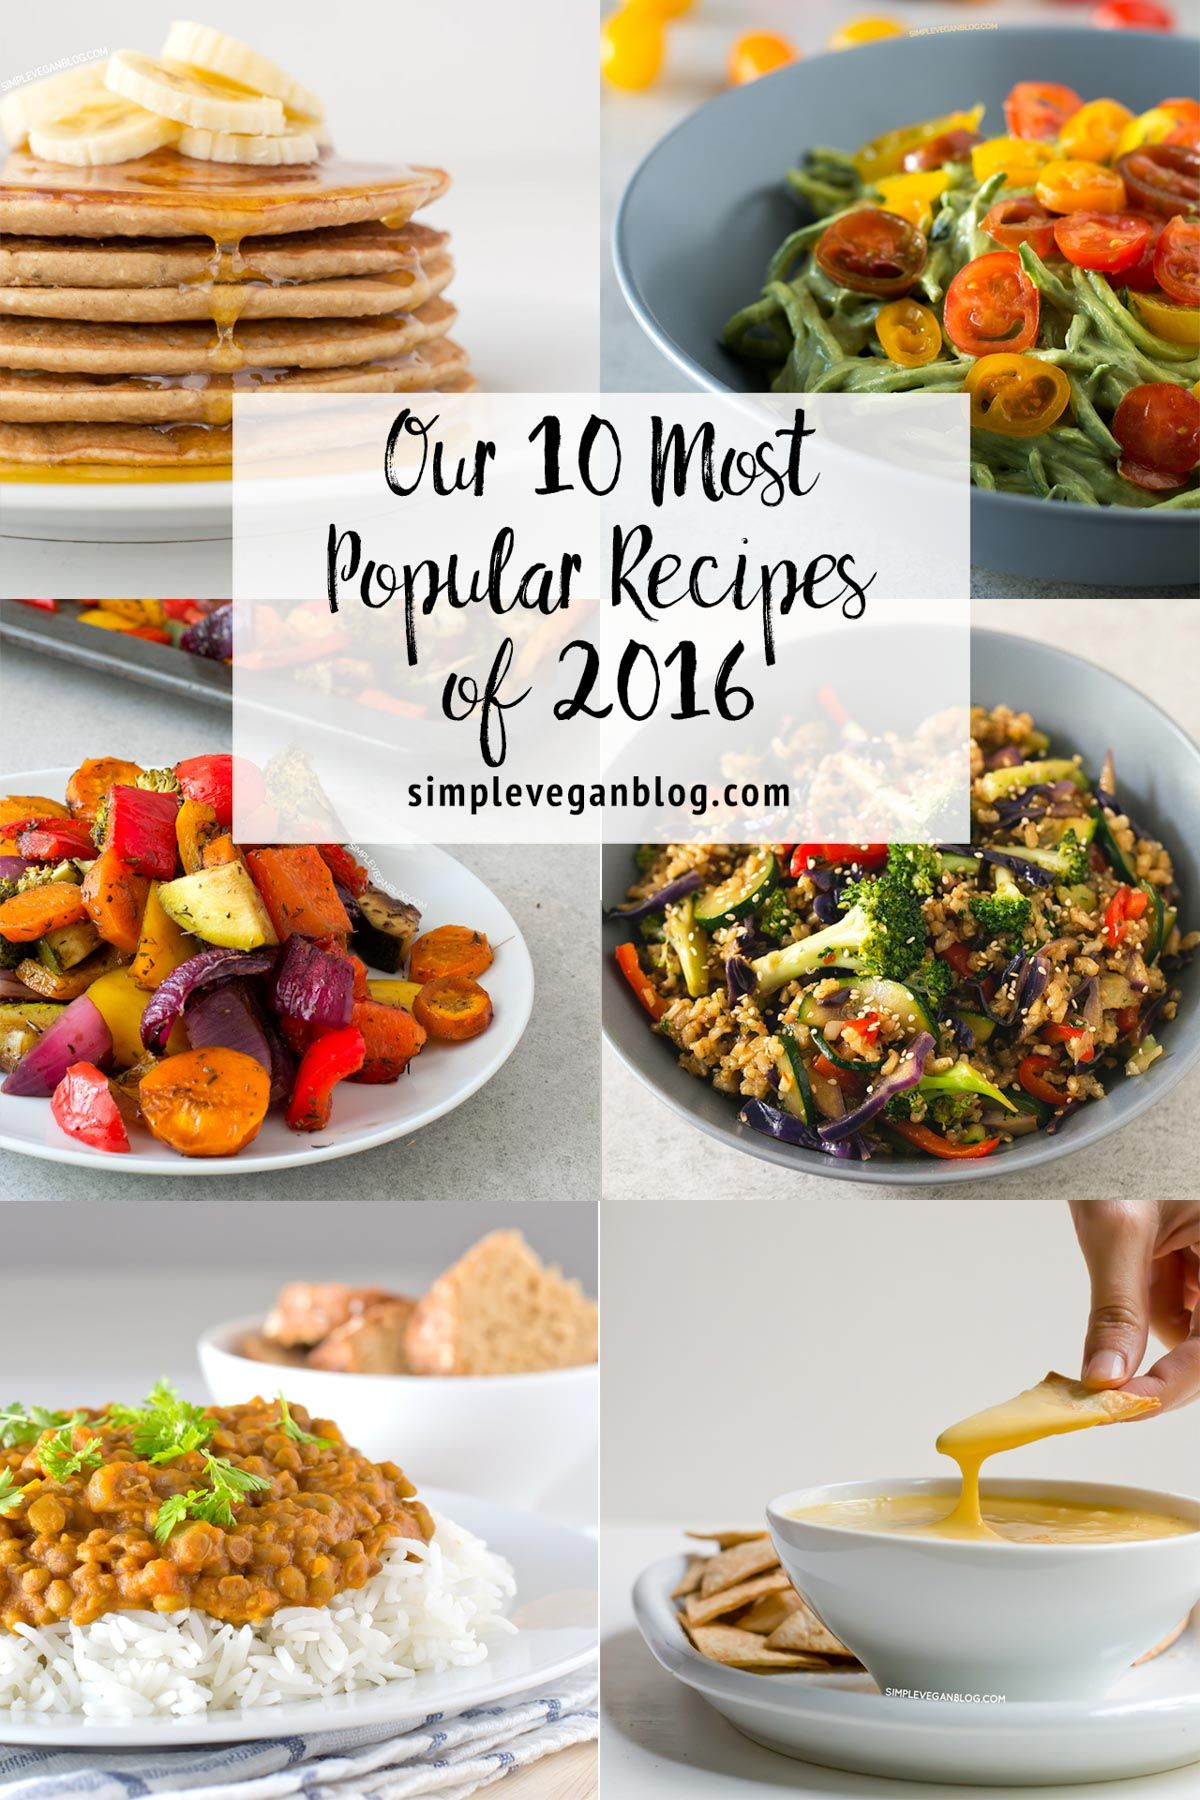 Our 10 Most Popular Recipes of 2016 | Simple Vegan Blog